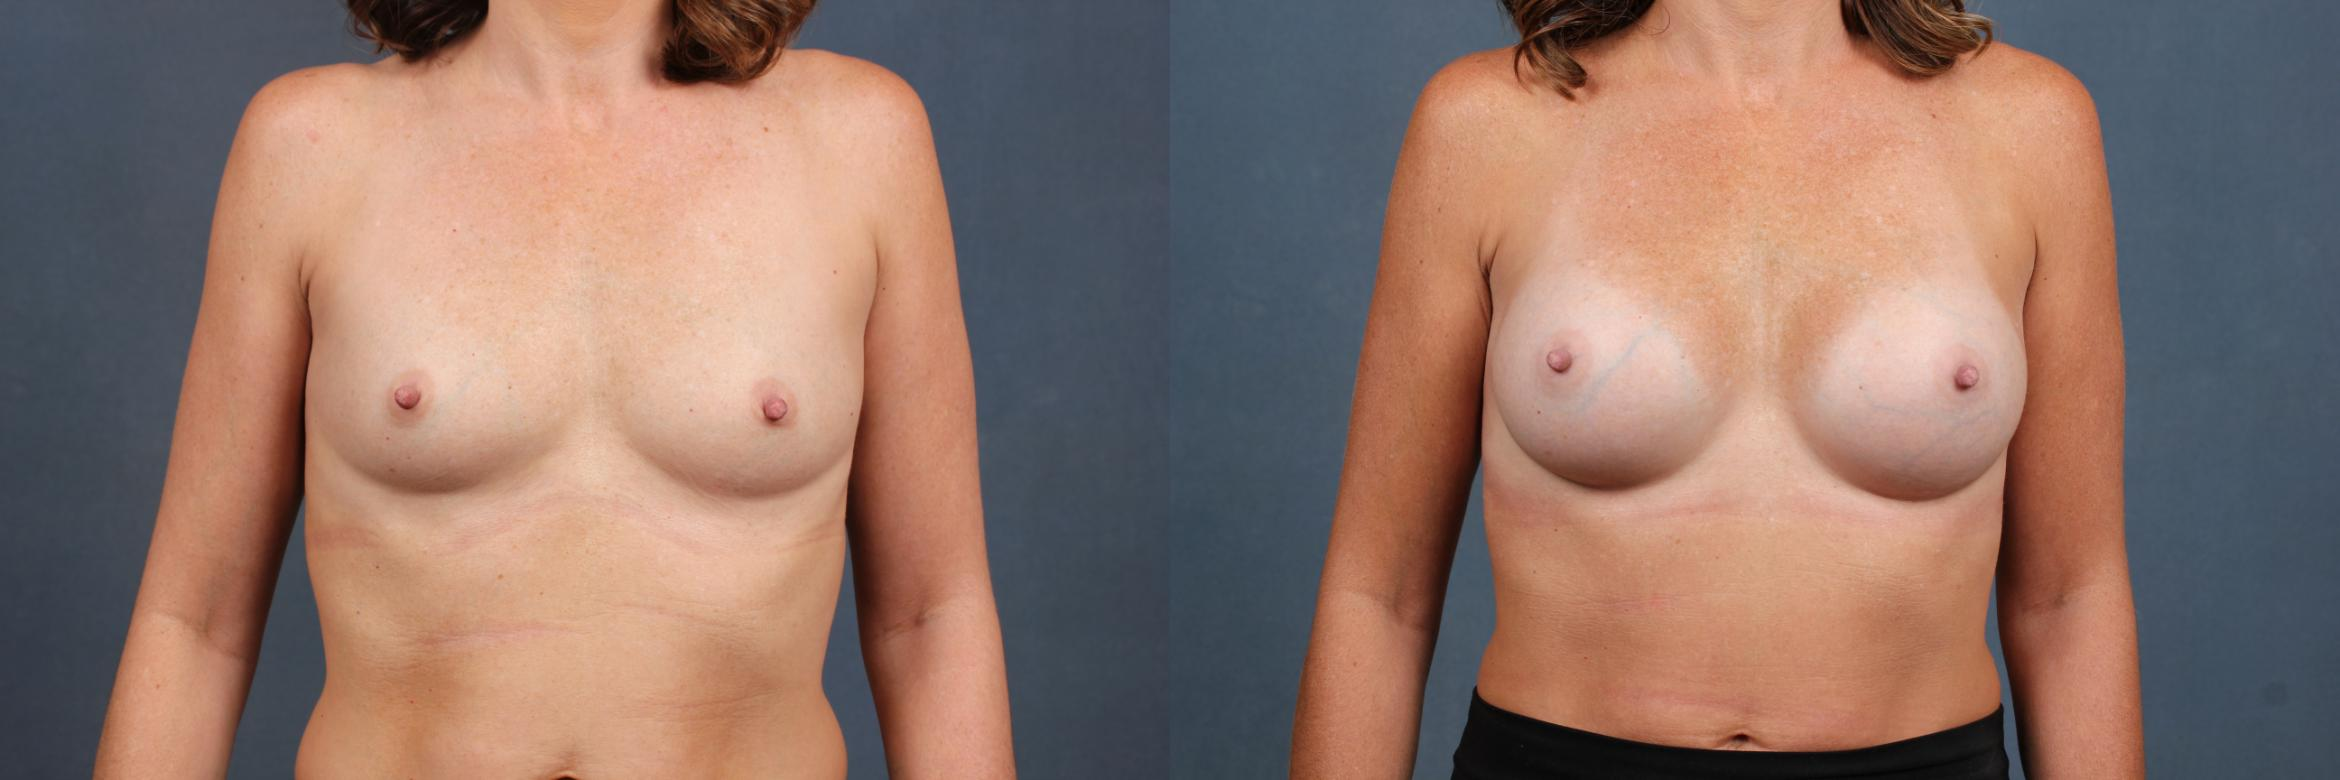 Enlargement - Silicone Case 348 Before & After View #1 | Louisville & Lexington, KY | CaloAesthetics® Plastic Surgery Center